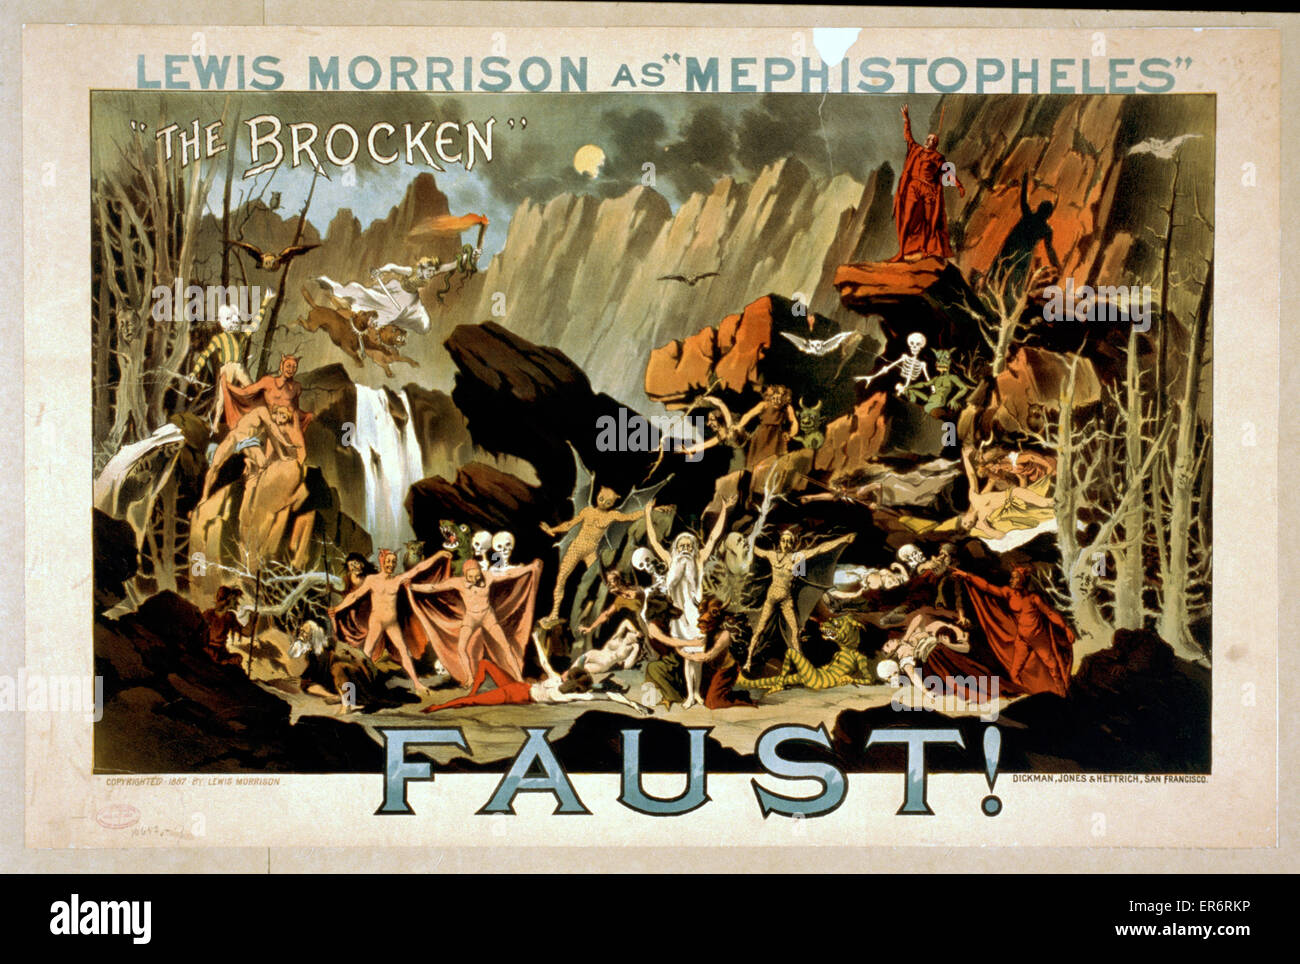 Faust posters poster - Stock Image